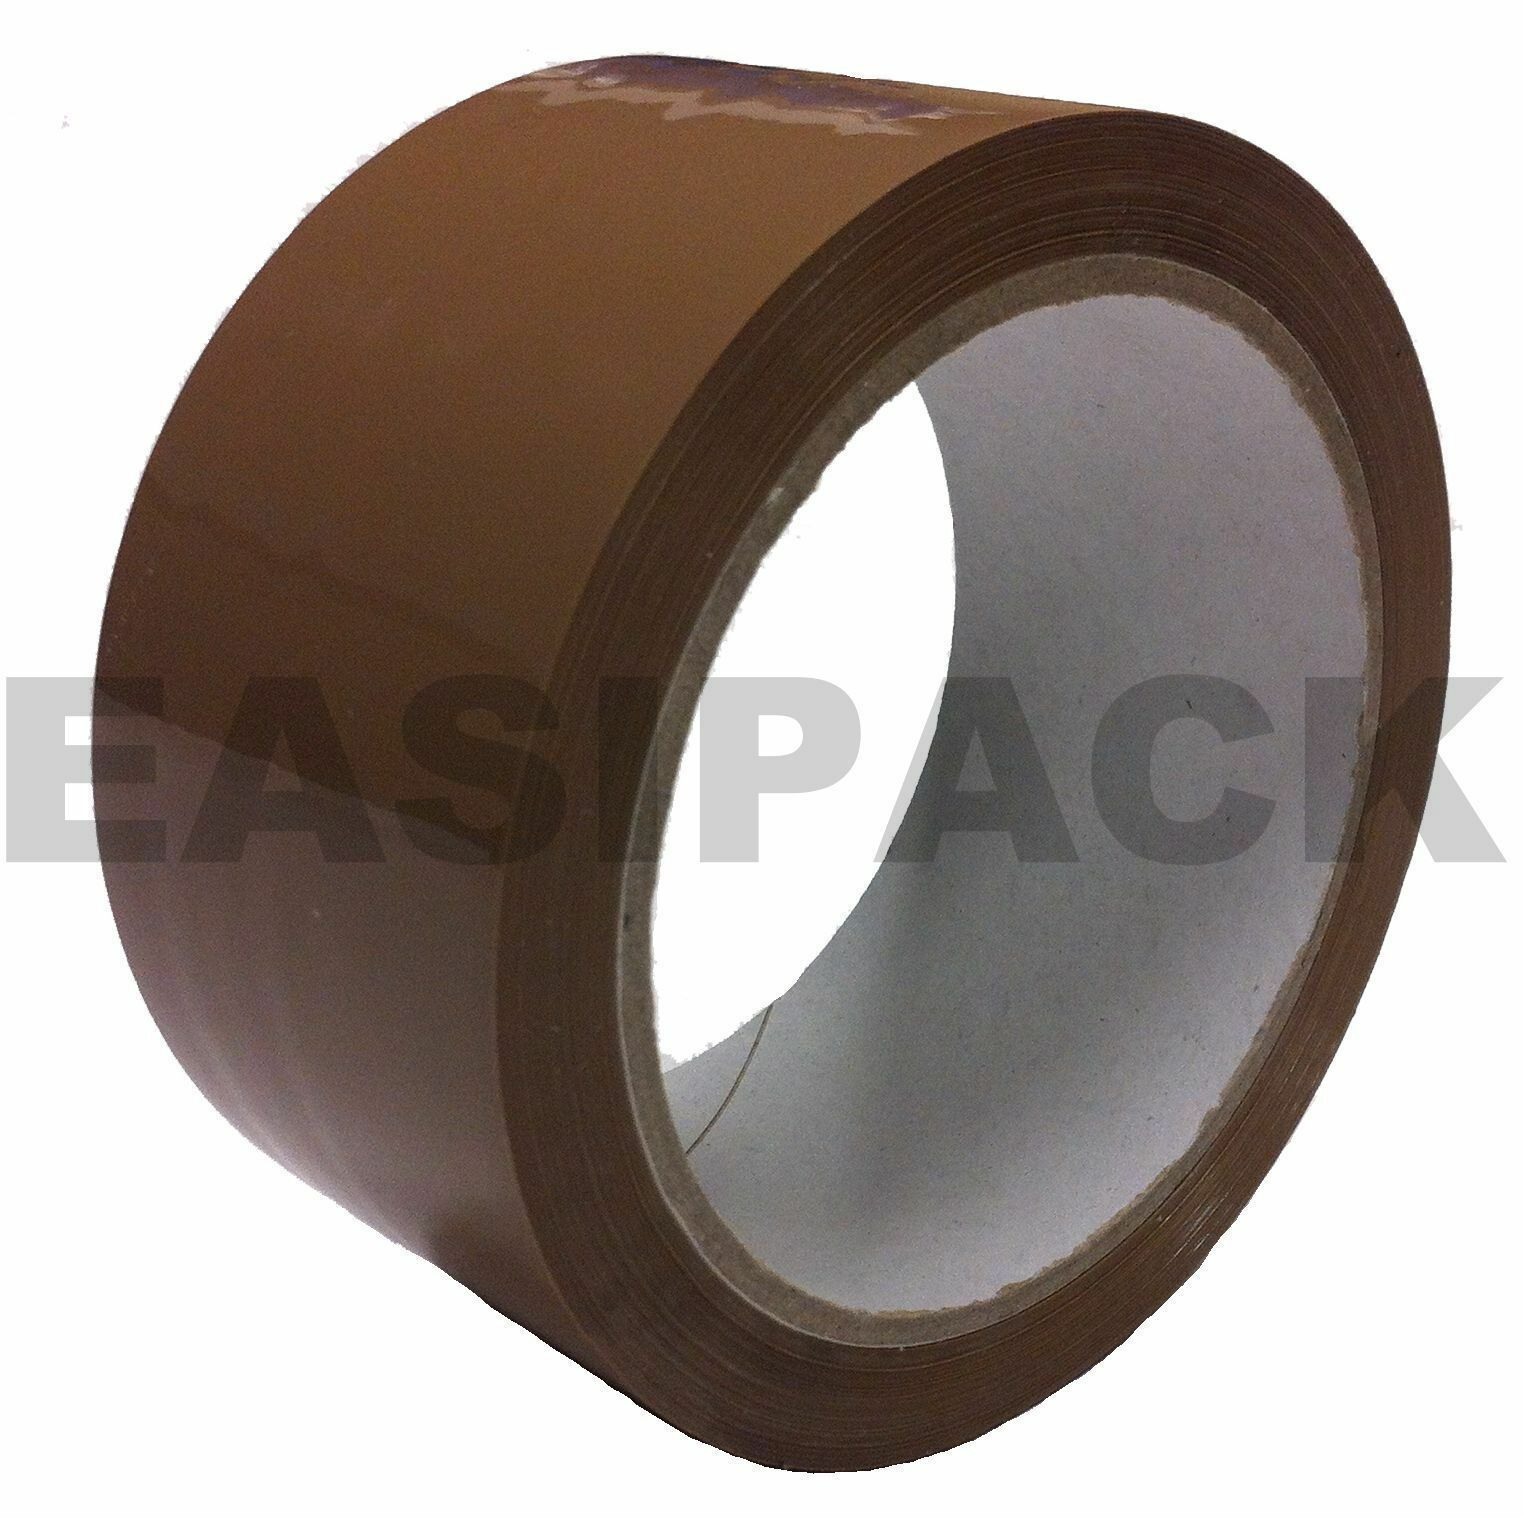 72 BIG Rolls CLEAR STRONG Parcel Tape sellotape carton sealing boxes 48mm x 66m